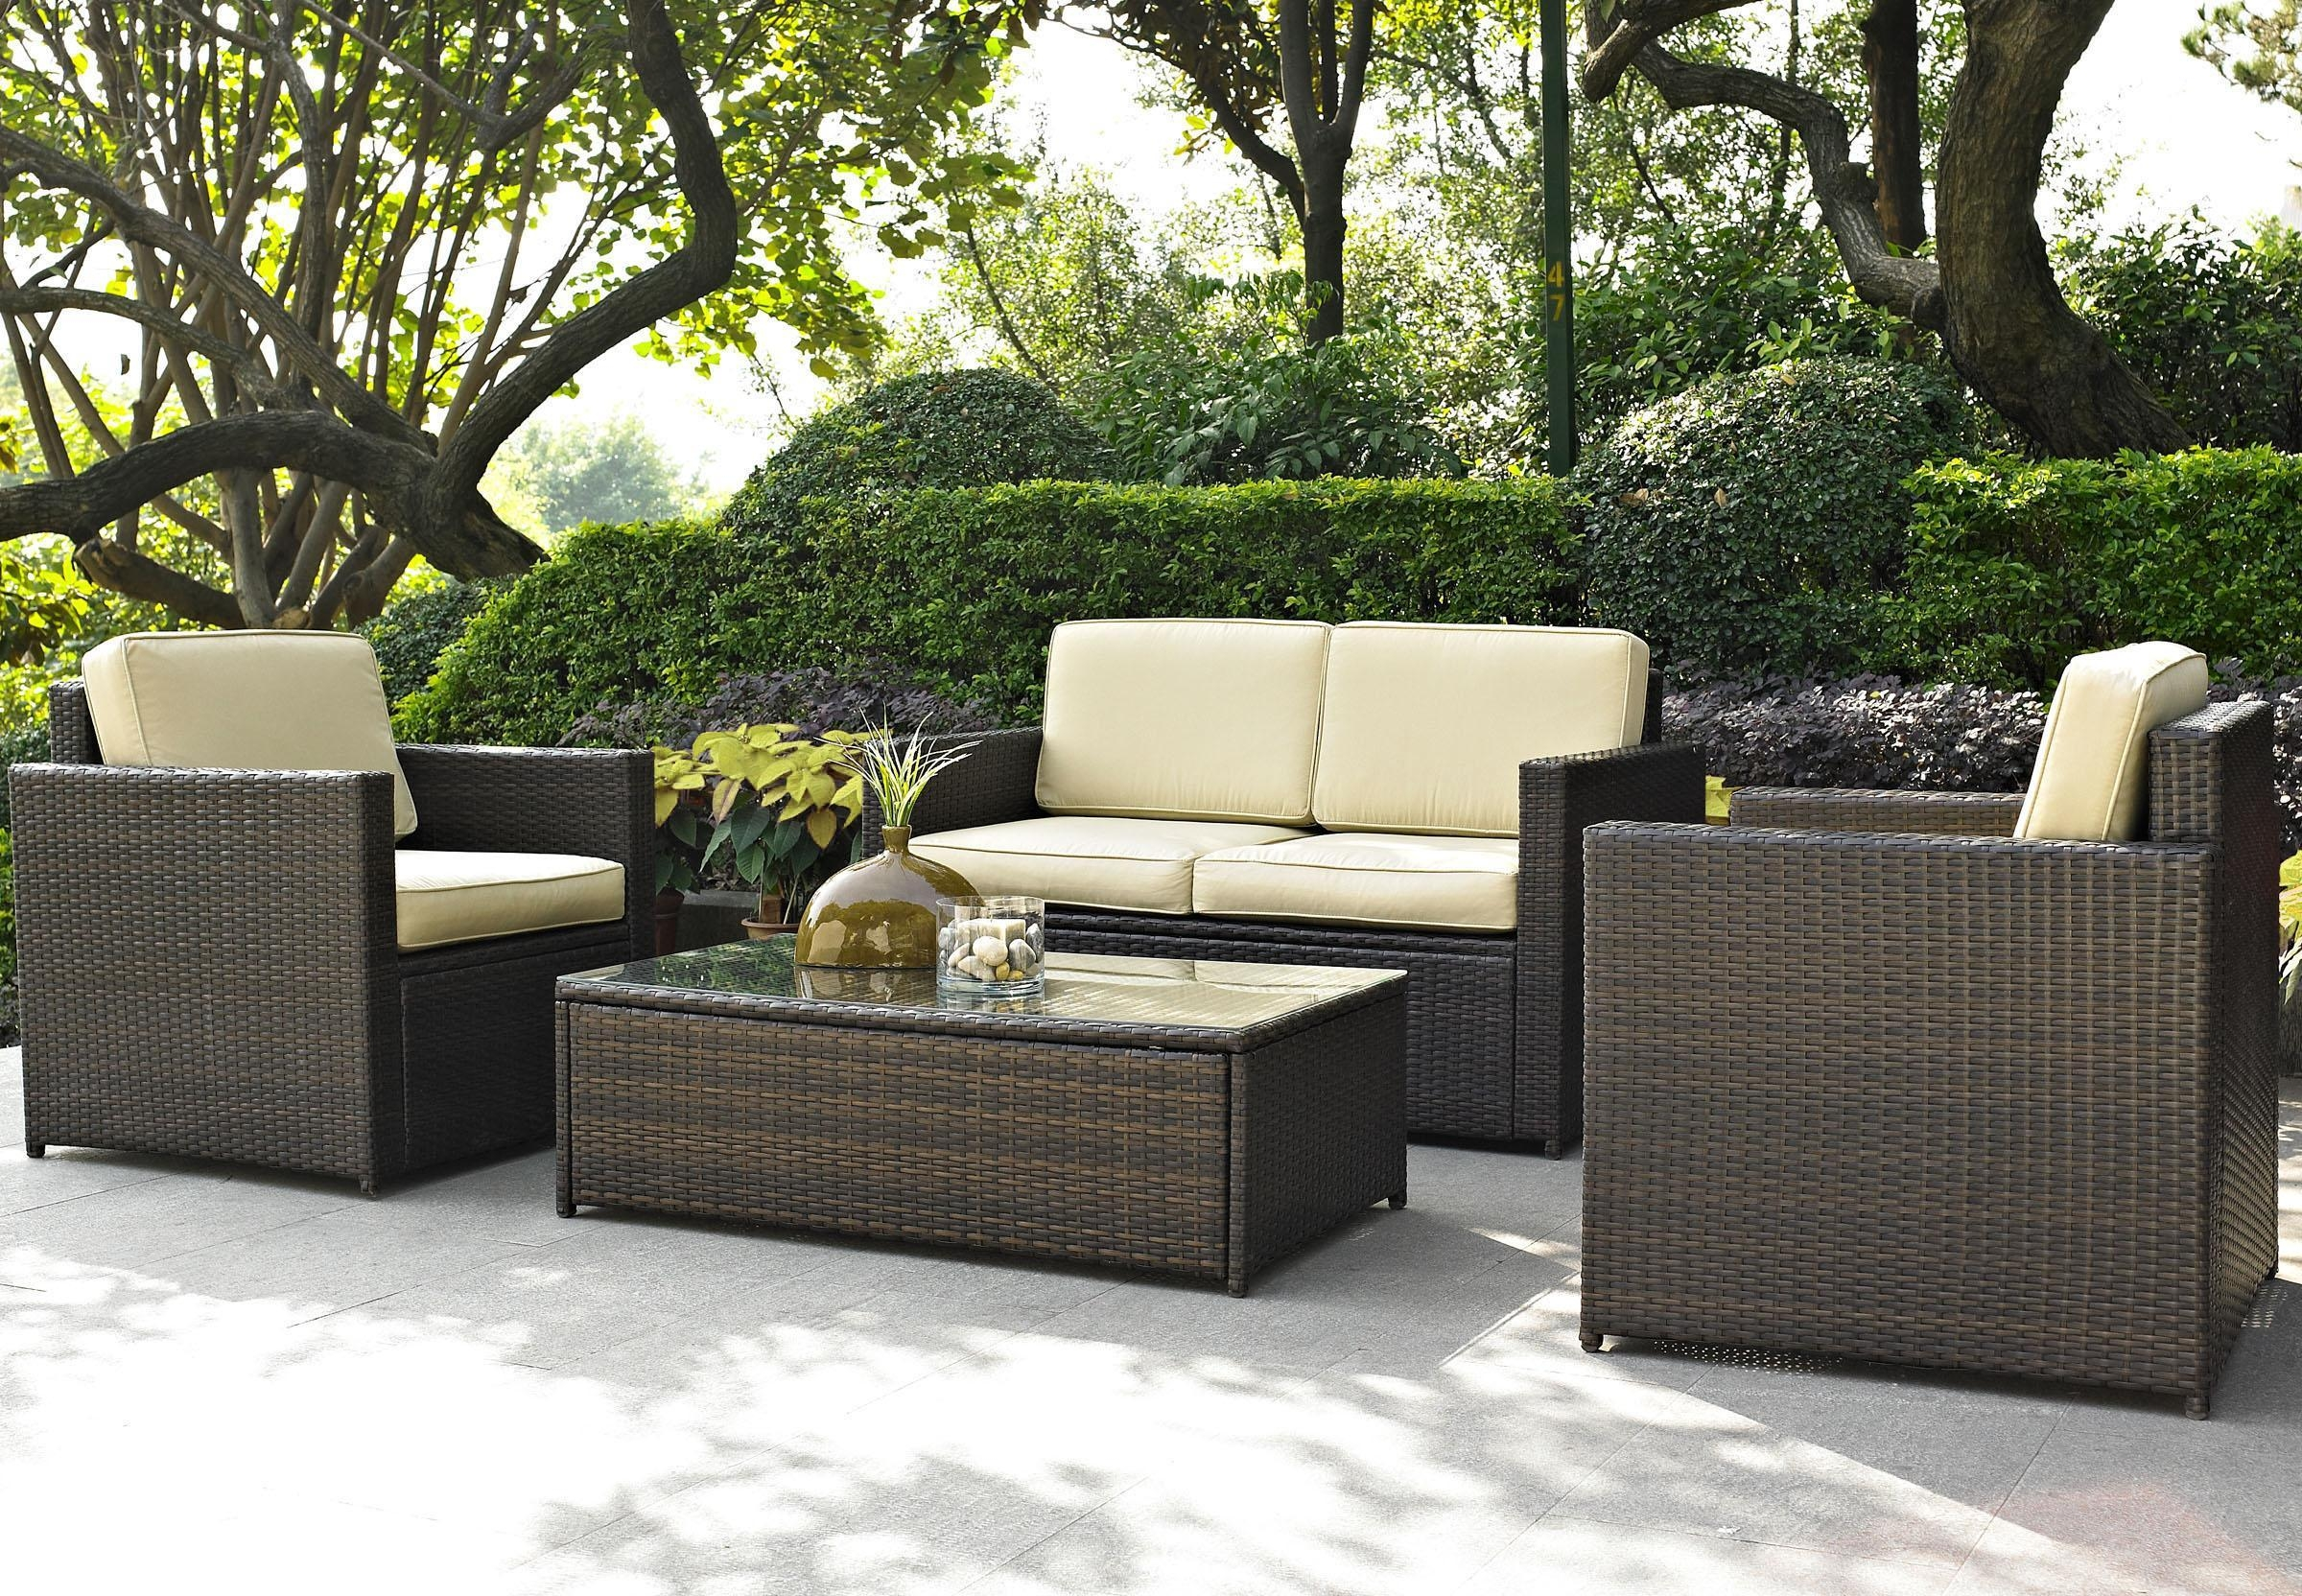 Sofas : Fabulous Outdoor Patio Set Wicker Porch Furniture Rattan With Modern Rattan Sofas (Image 19 of 23)